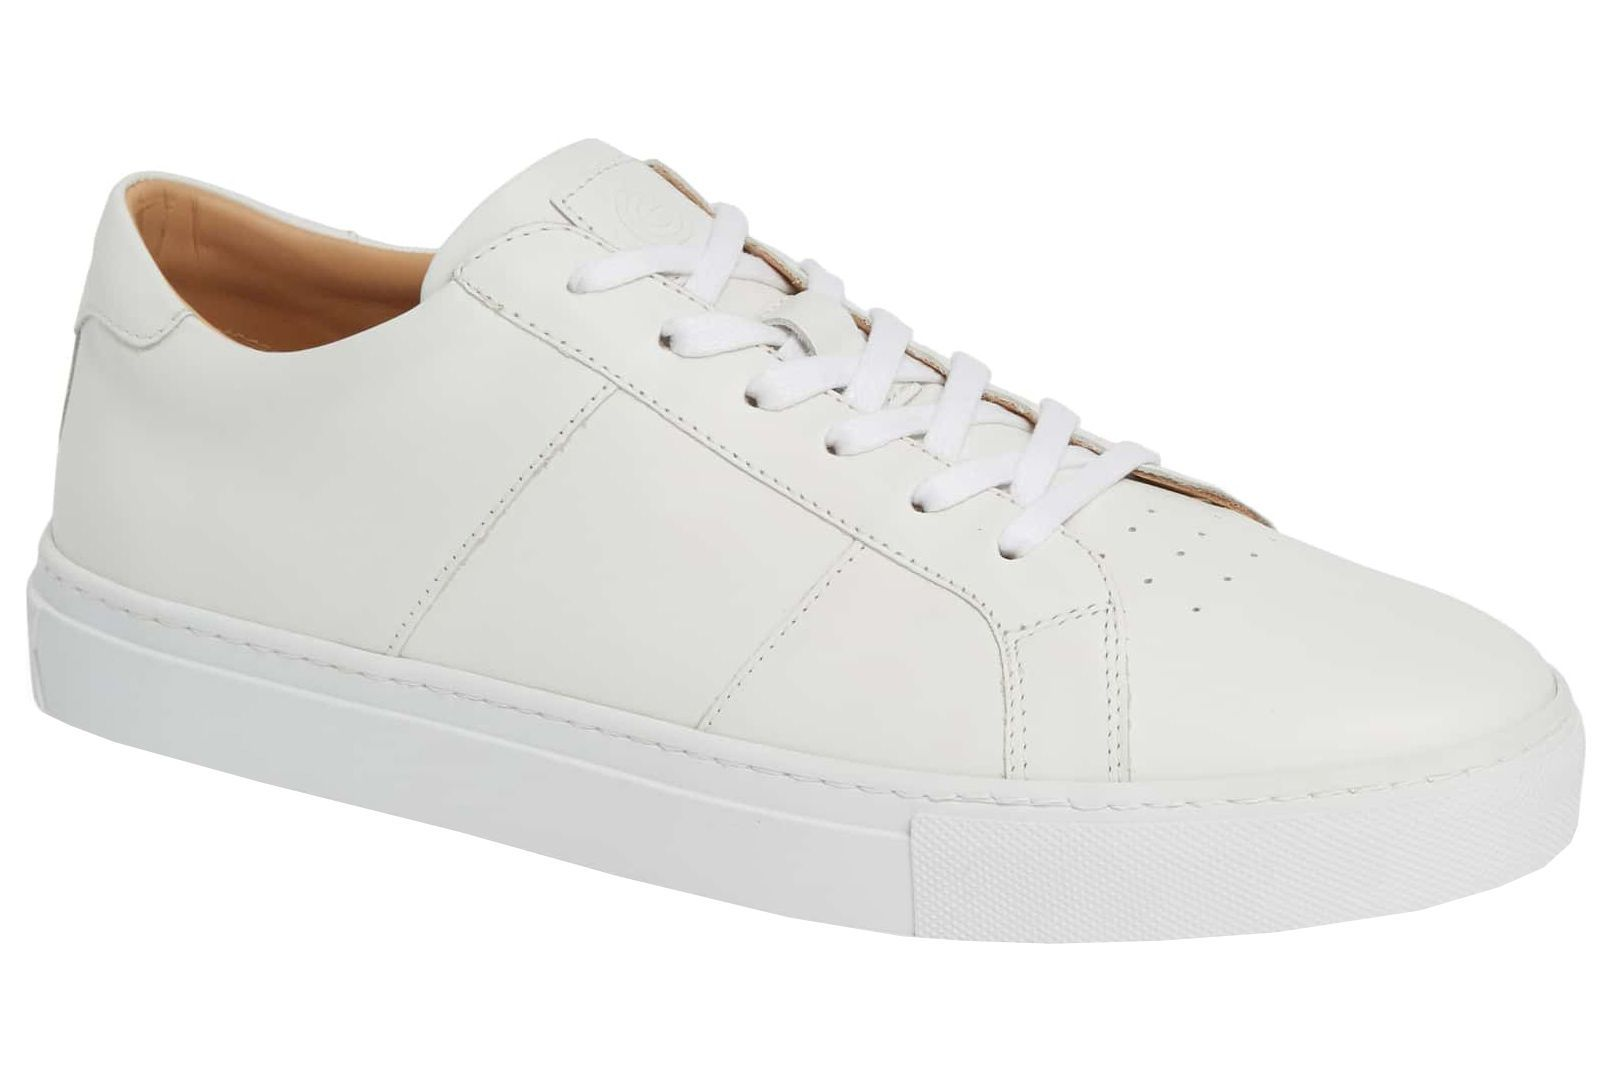 ef03783b110 16 Best White Sneakers for Men in 2019 - 16 White Shoes to Wear Right Now